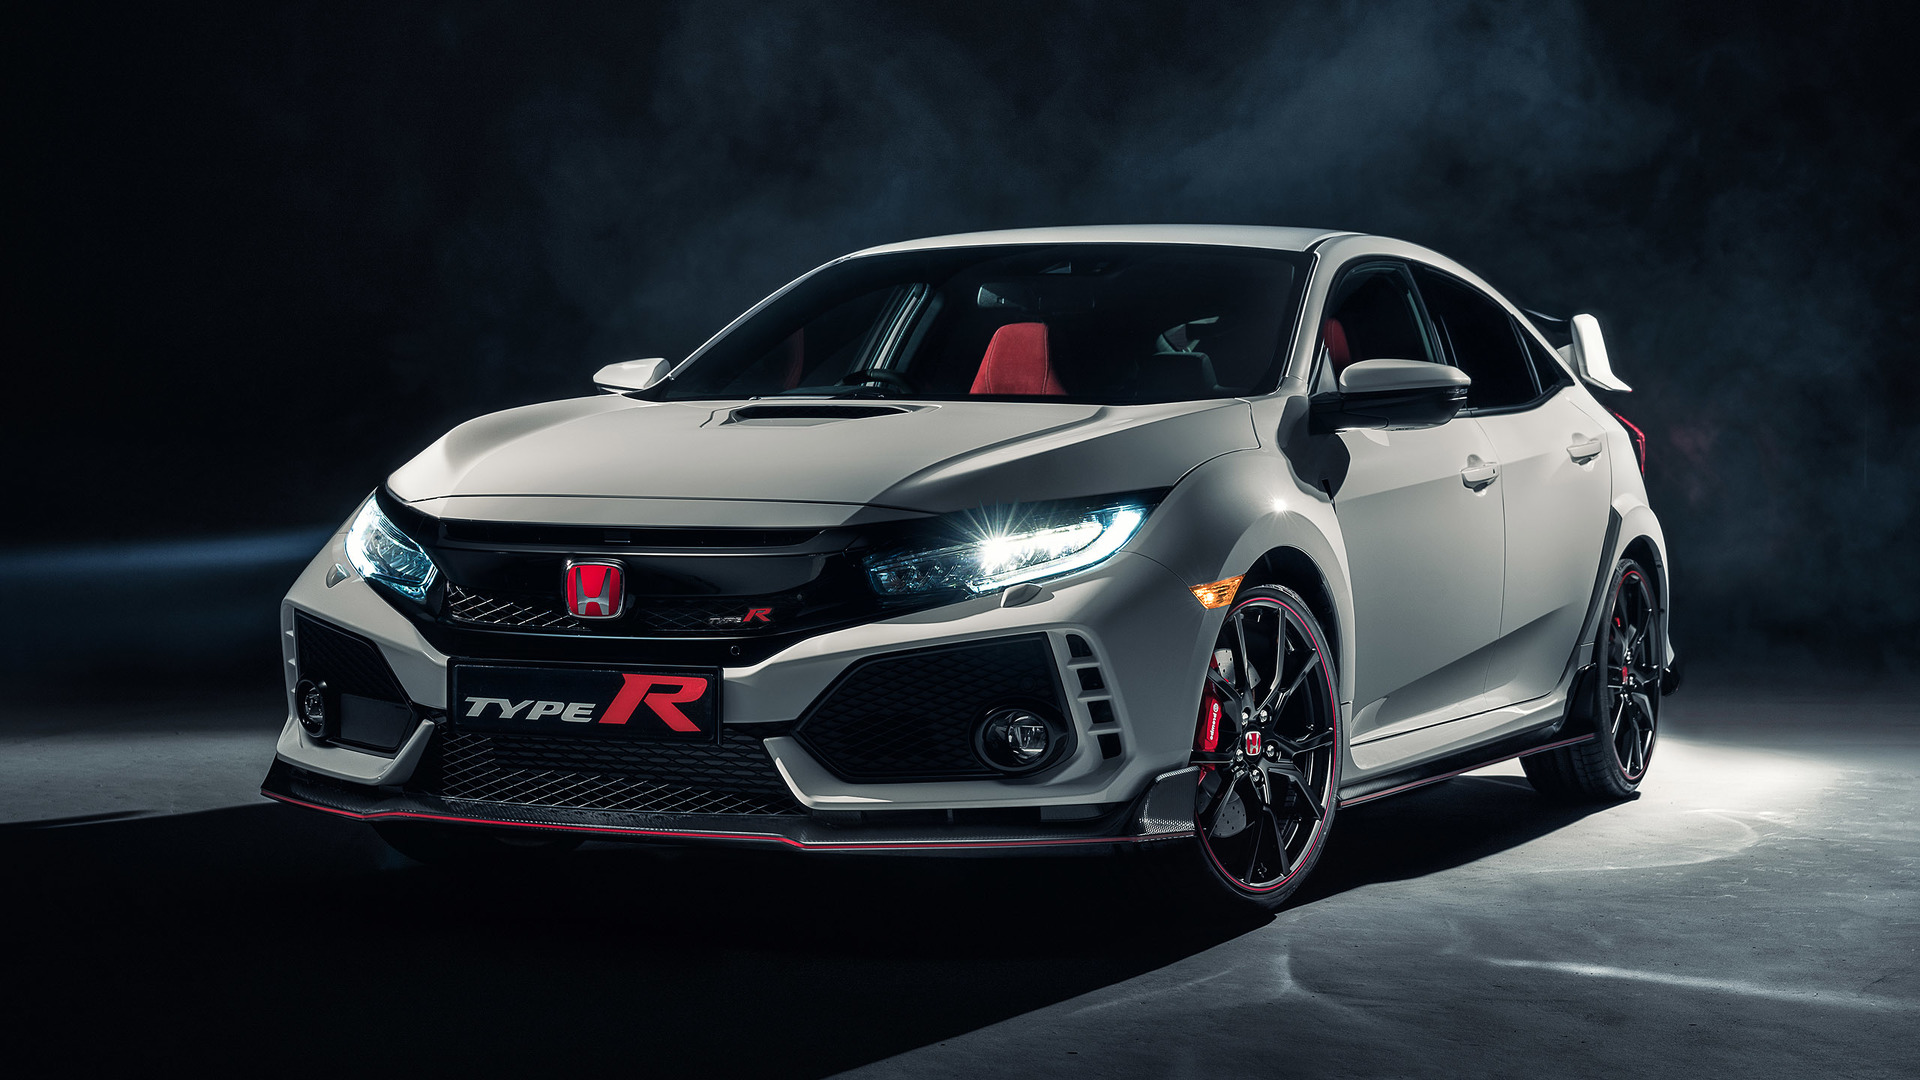 Honda Civic Type R sales begin in U.S. late spring